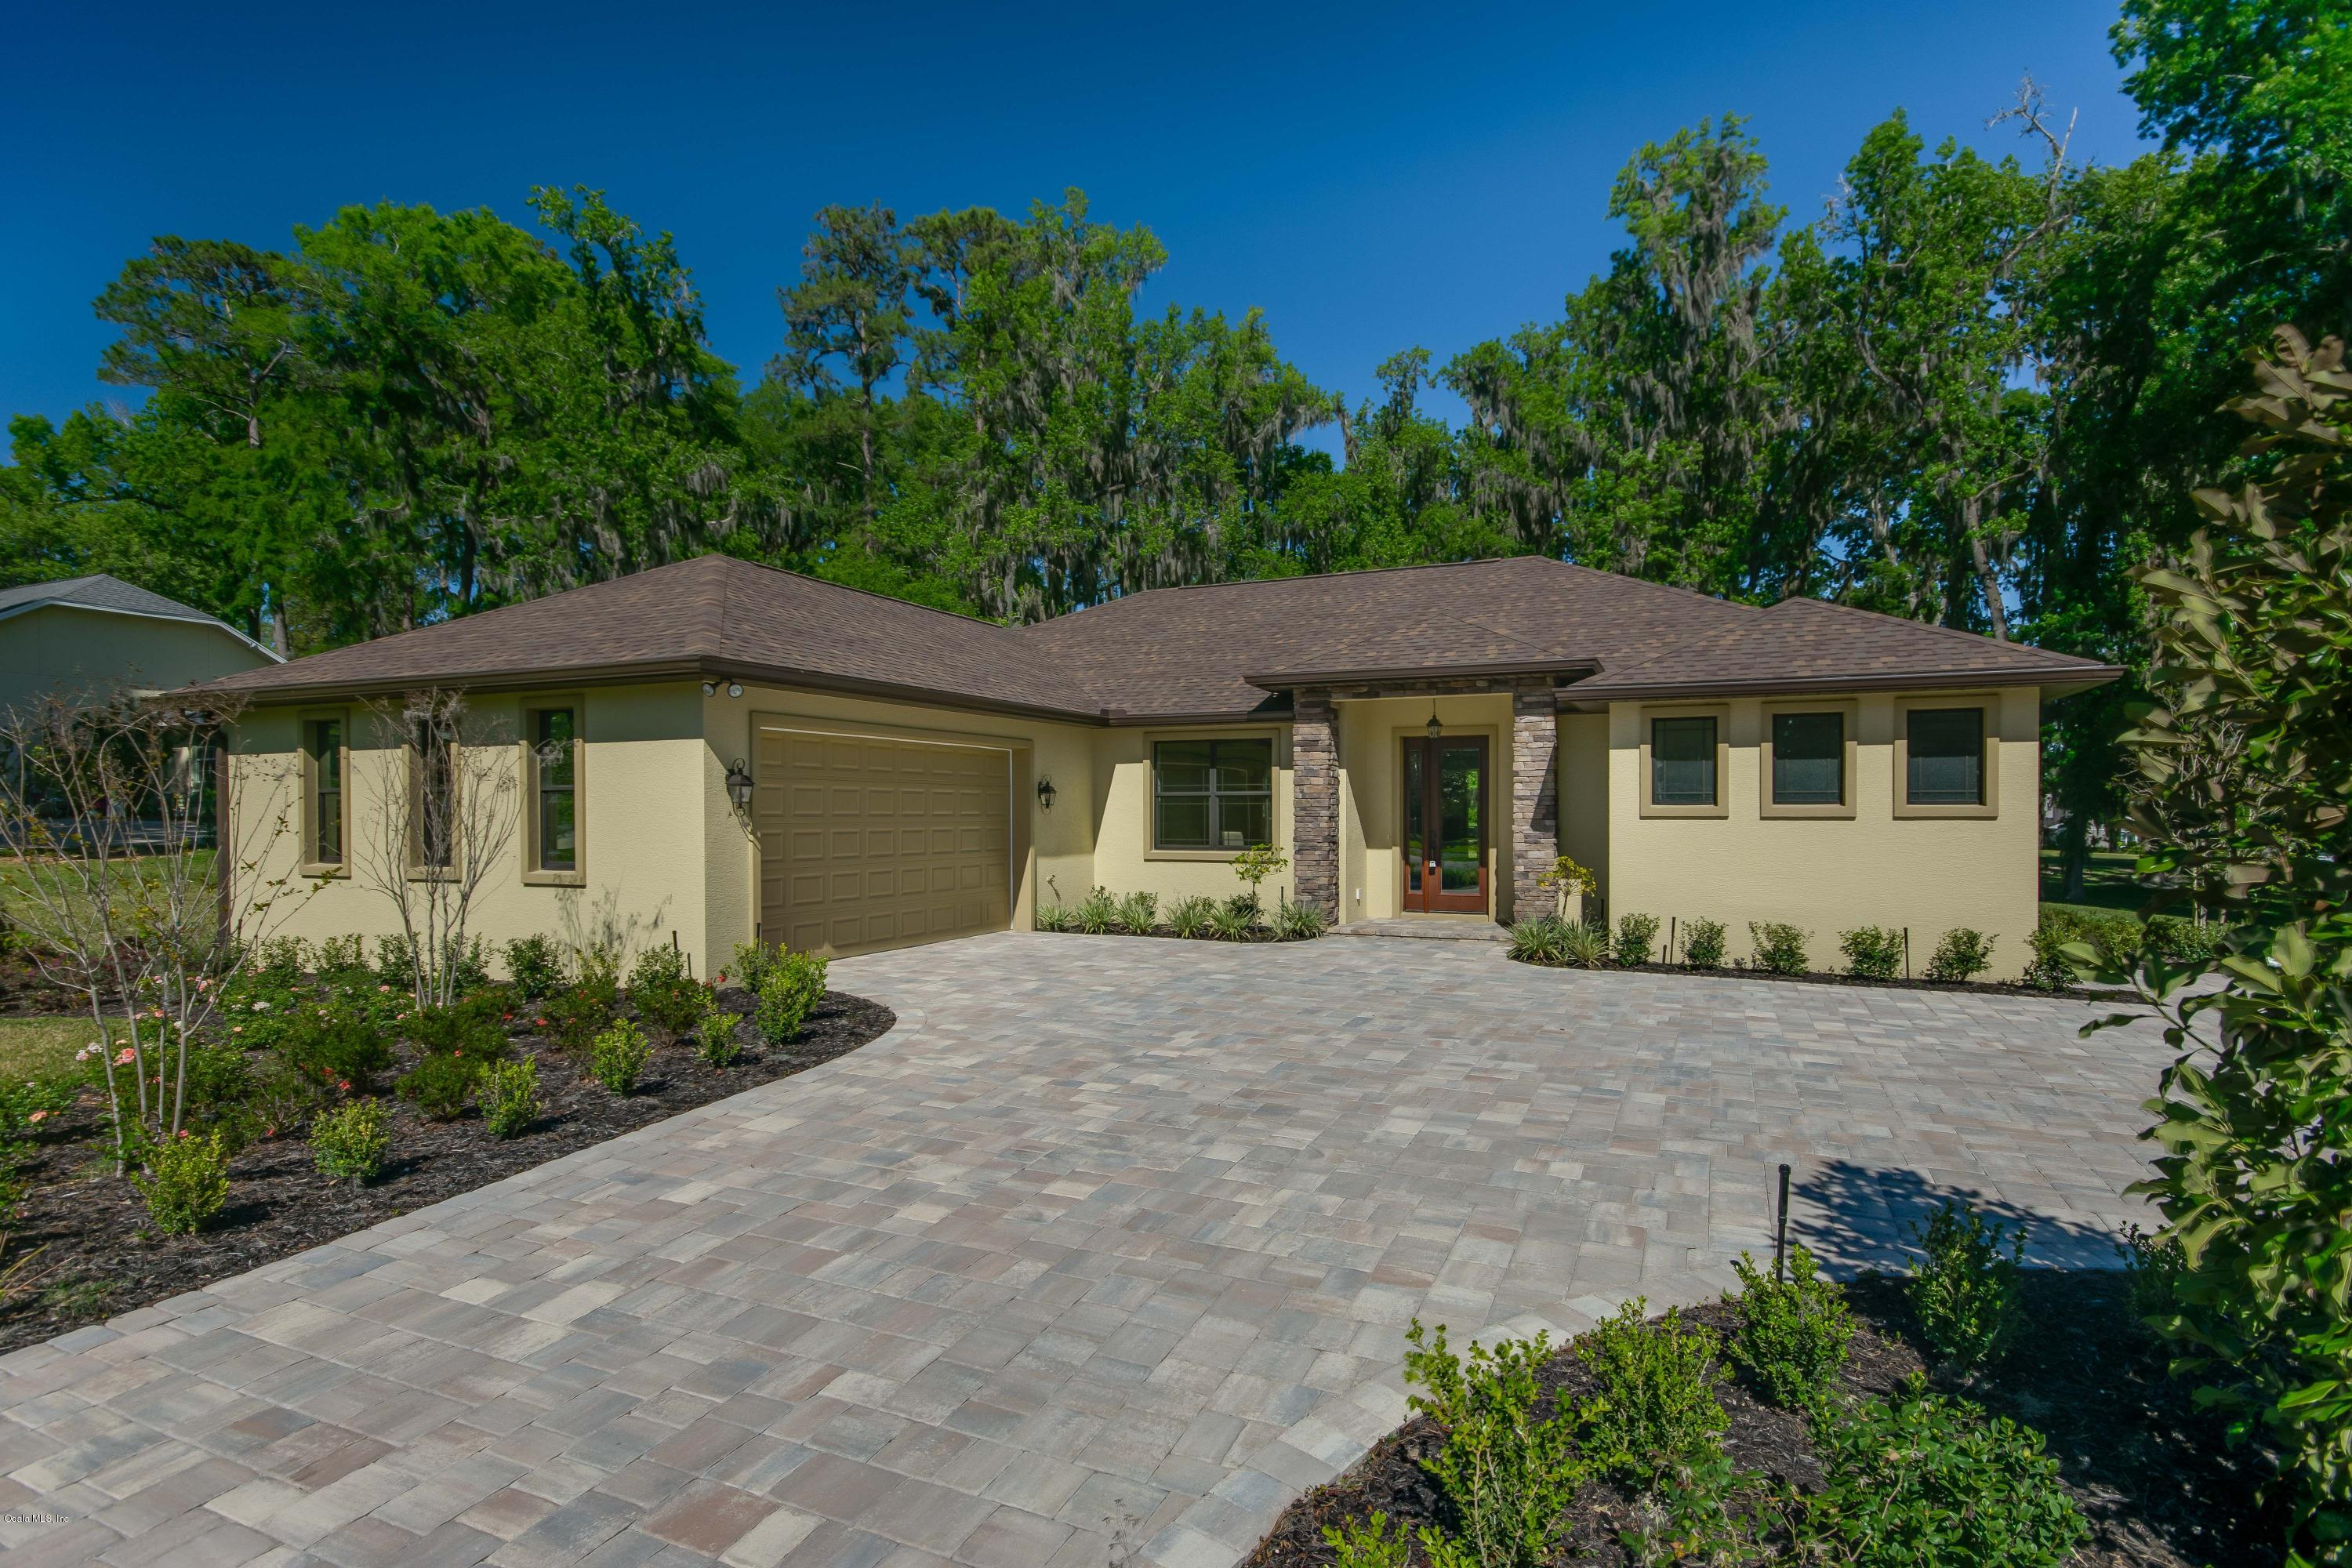 5267 NW 78TH COURT, OCALA, FL 34482